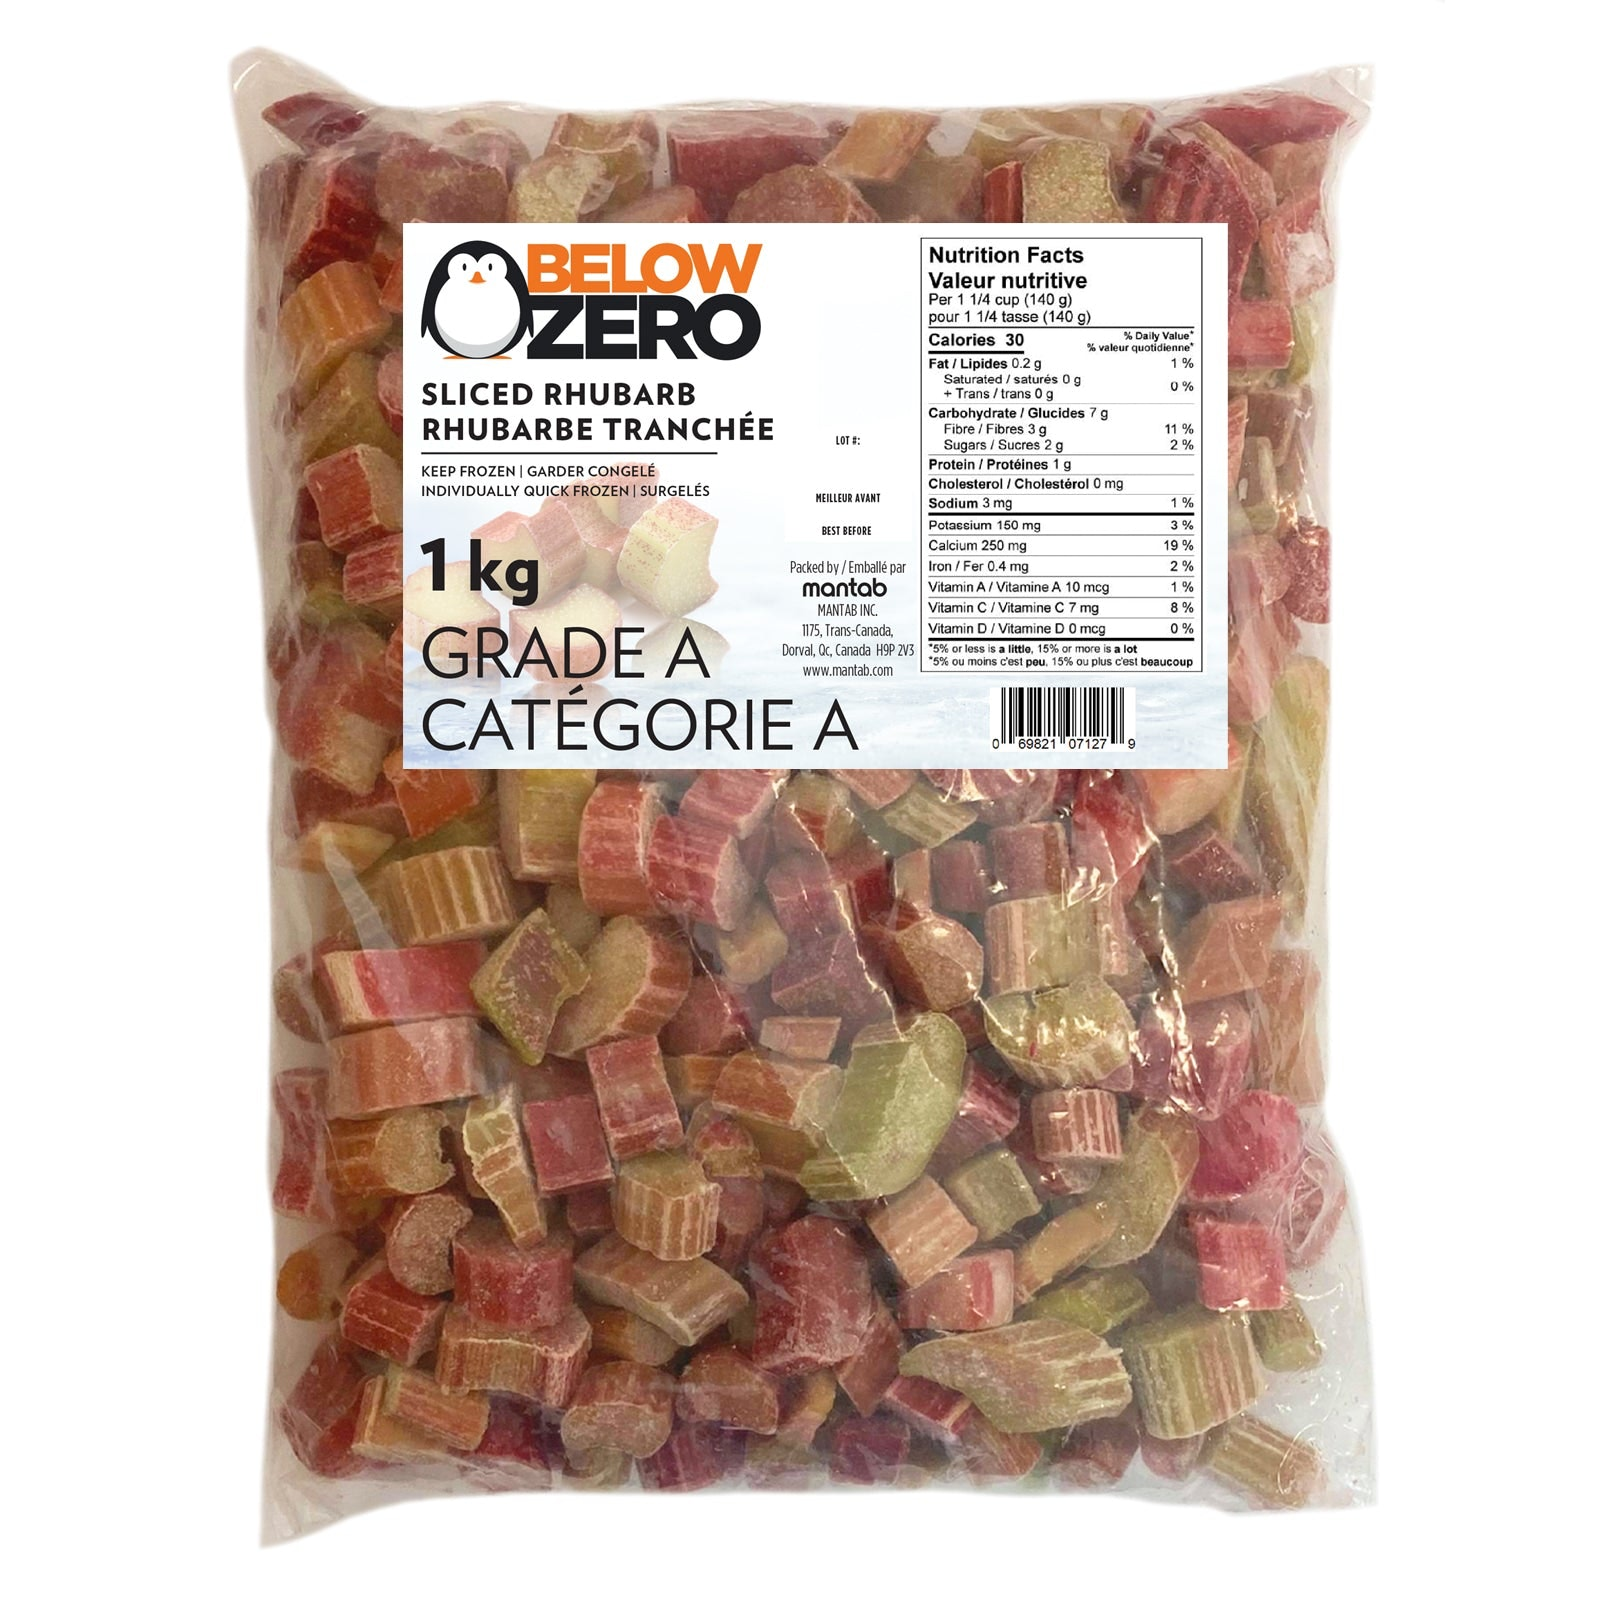 BELOW ZERO Sliced rhubarb